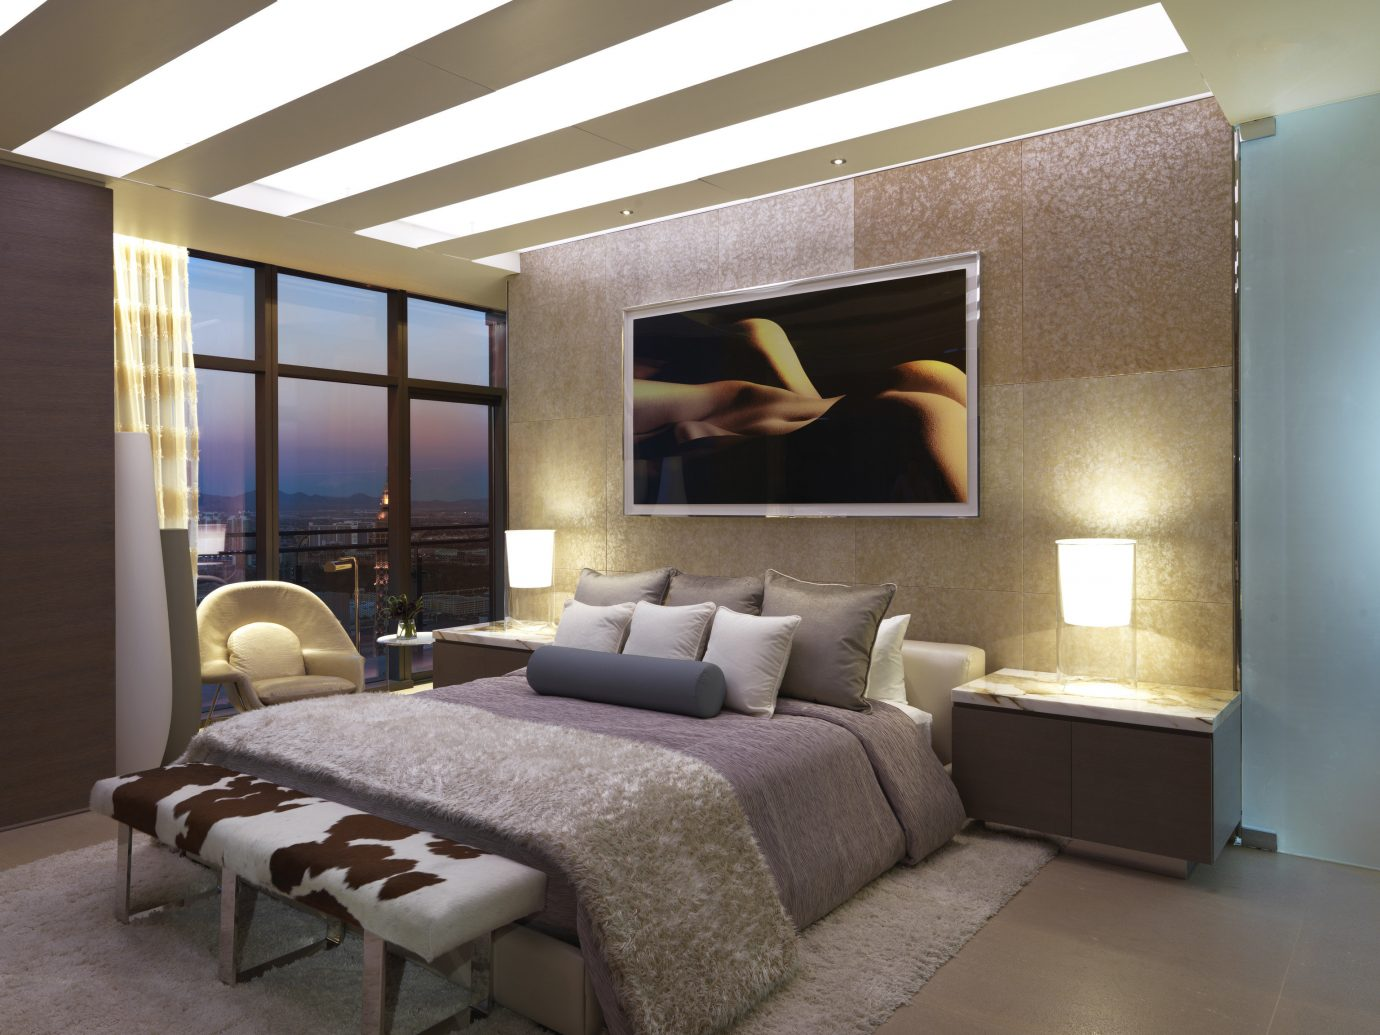 Hotels Romance indoor floor wall room ceiling interior design bed frame living room Living Bedroom home interior designer hotel window furniture Suite area Modern